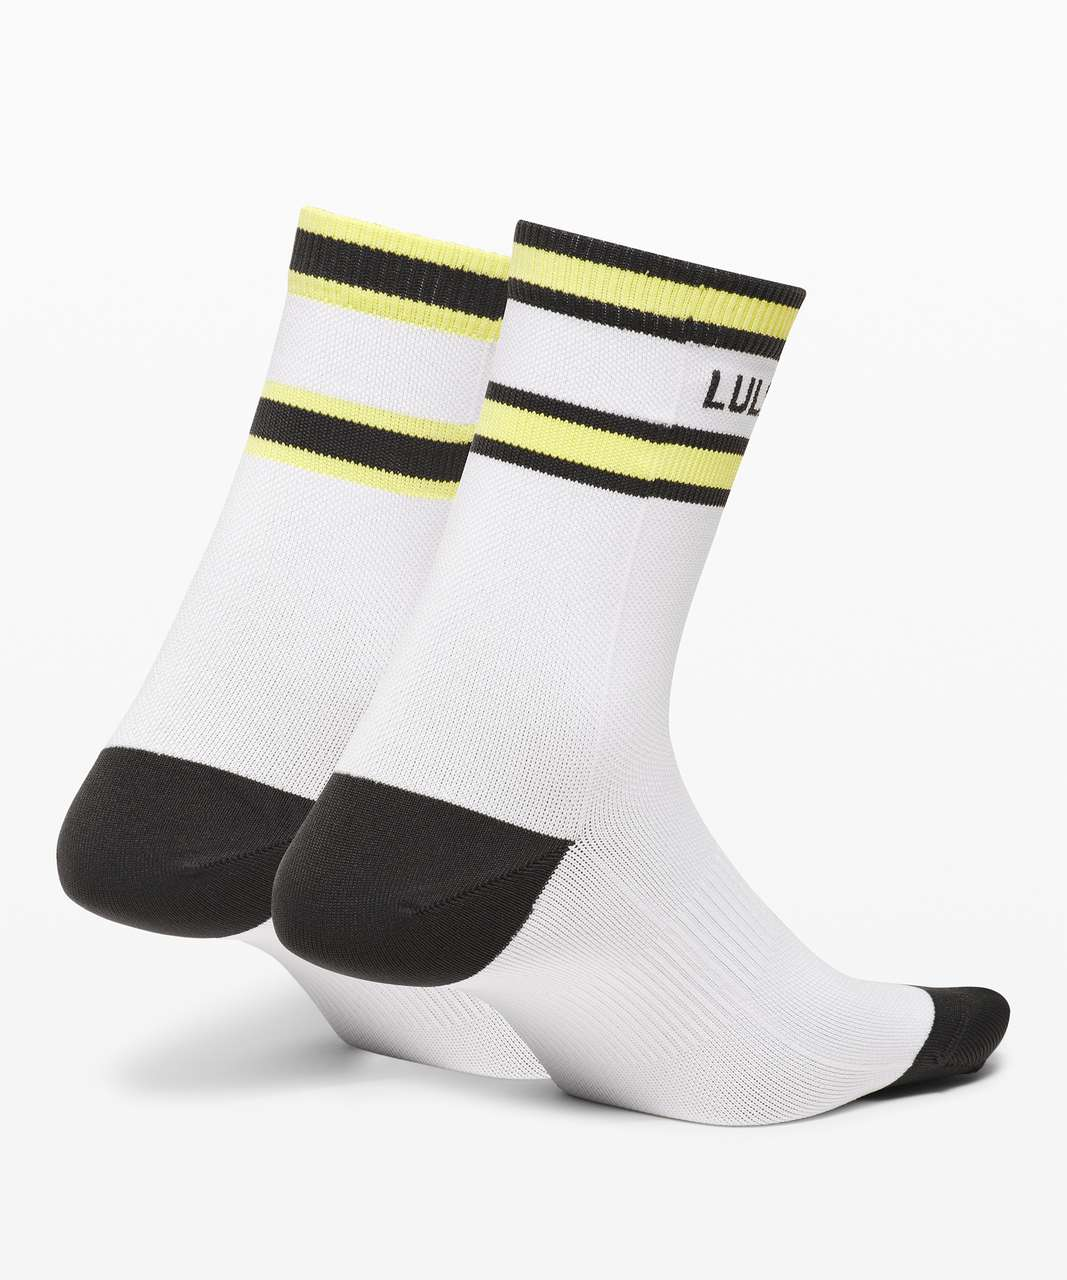 Lululemon Tale To Tell Quarter Sock *2 Pack - White / Graphite Grey / Lemon Vibe